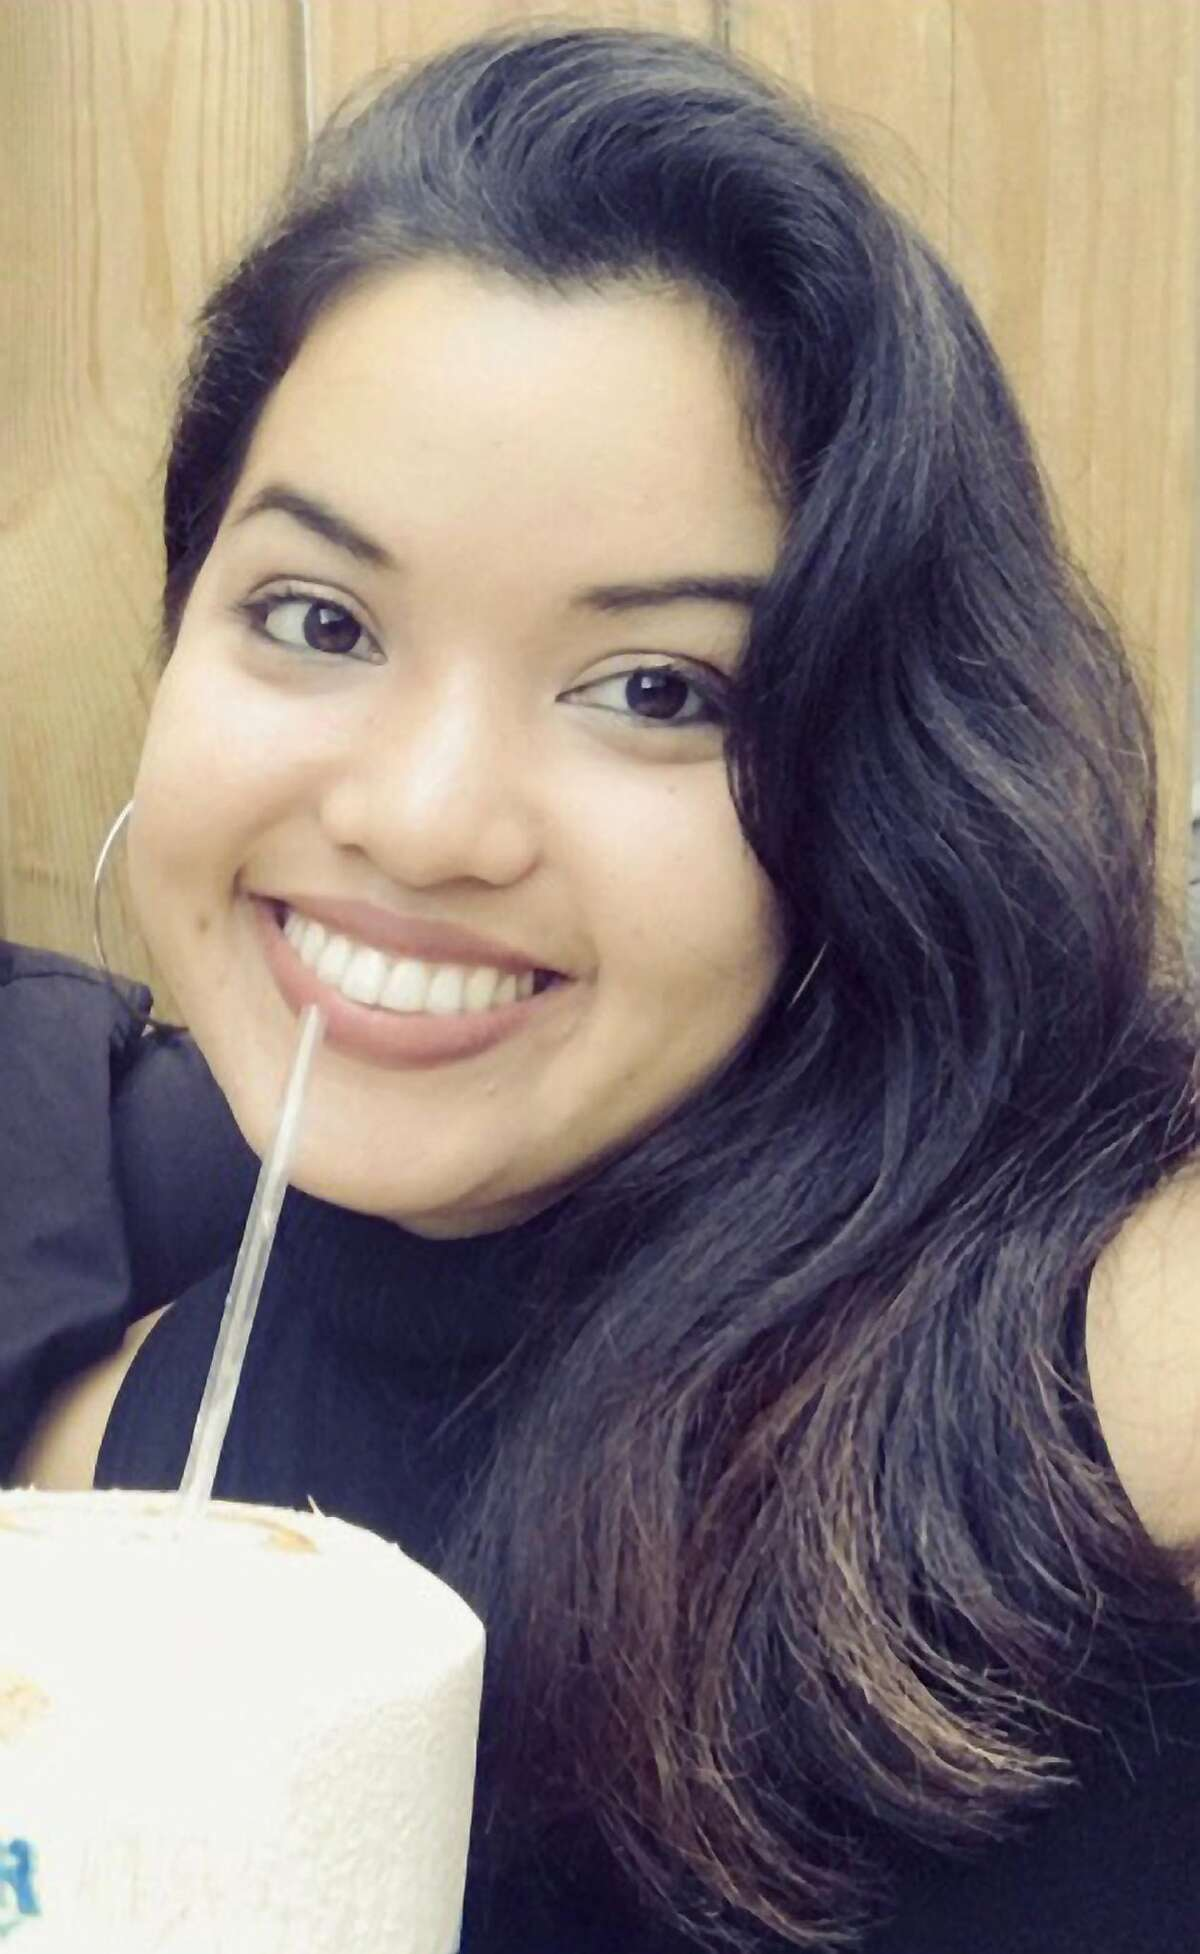 Vanessa Plotkin, 21, UC Berkeley student listed as missing by her family following the warehouse fire in the Fruitvale neighborhood of Oakland during the early hours of Saturday December 3, 2016.. Photo courtesy of Gary Plotkin